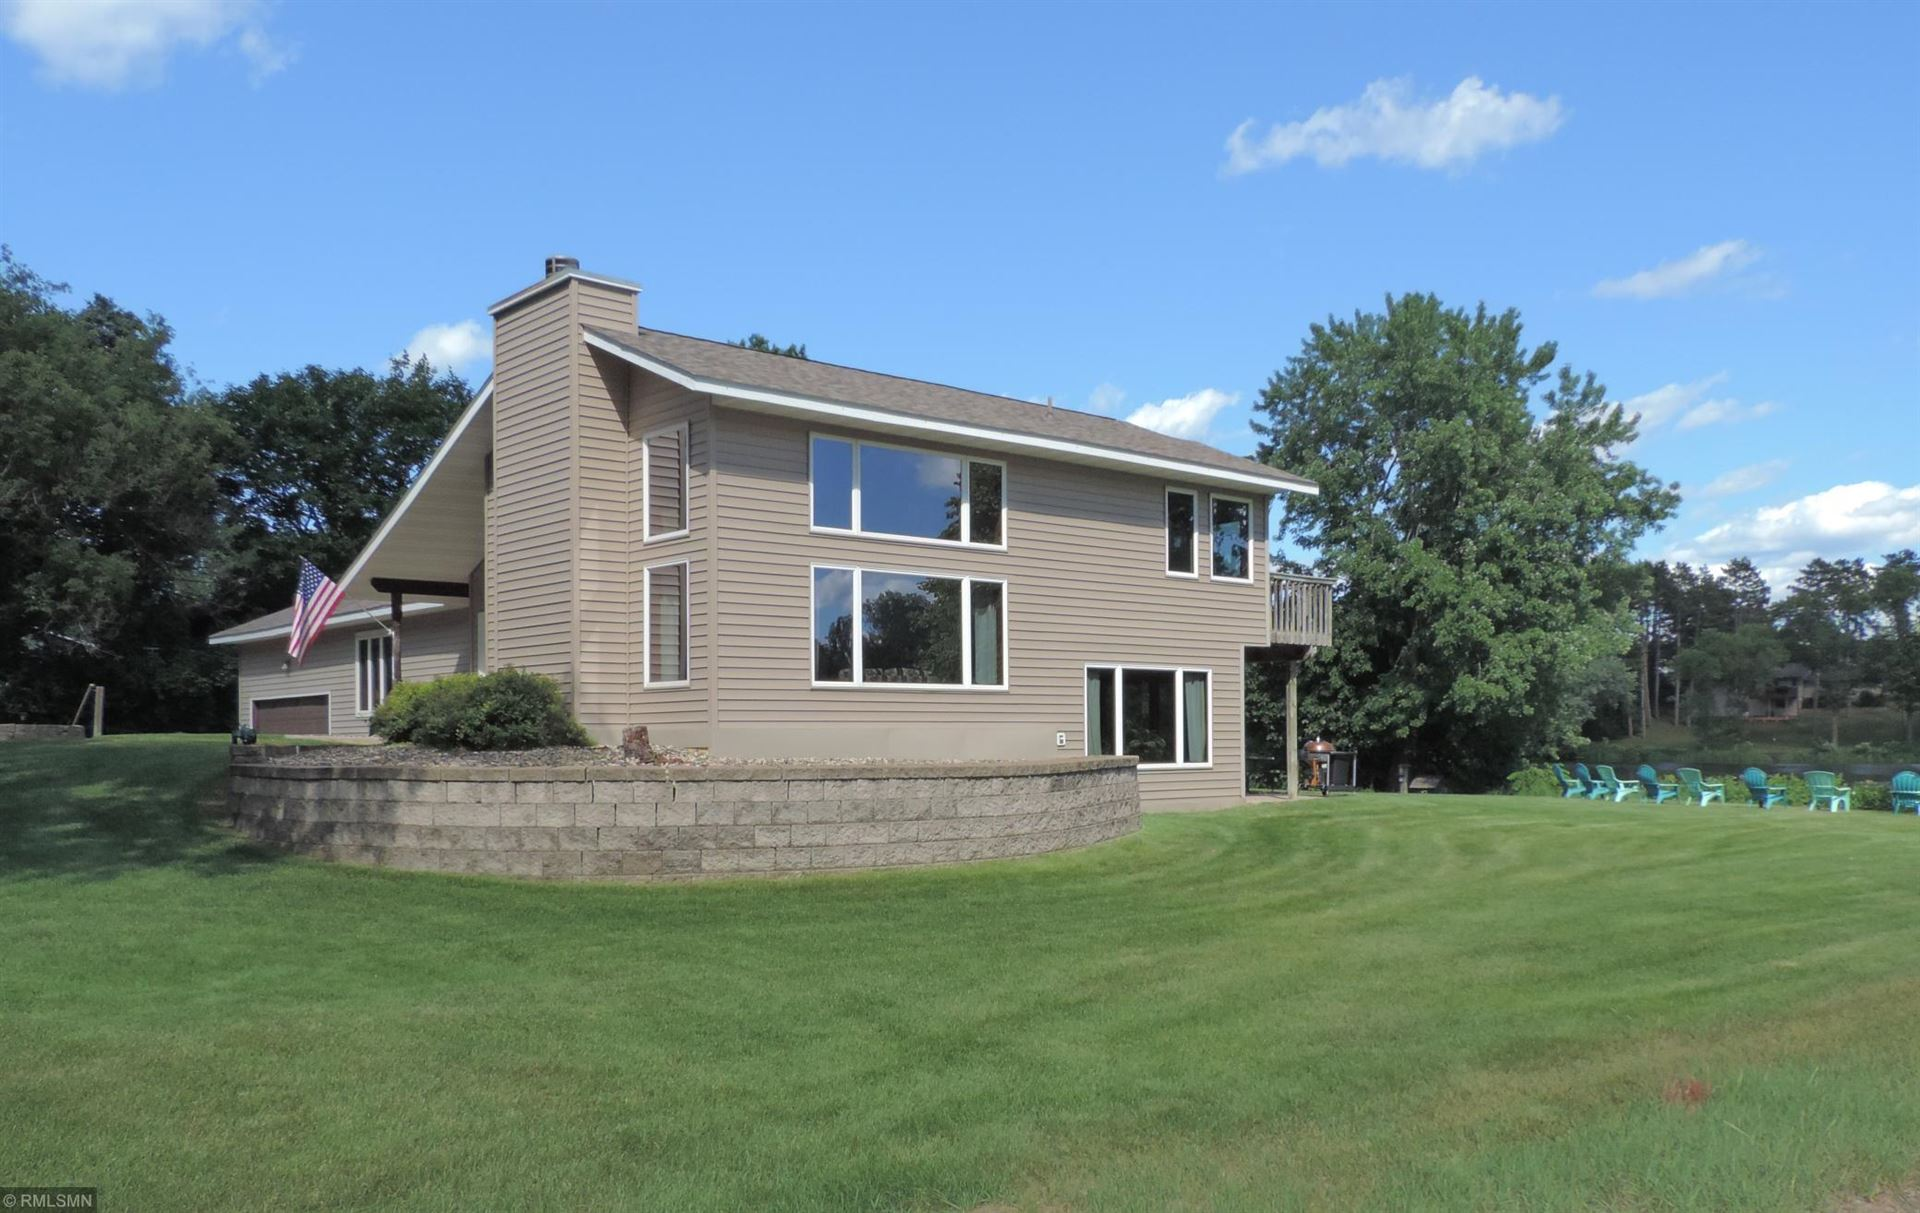 1927 Sicard Lane, Star Prairie, WI 54025 - MLS#: 5628367